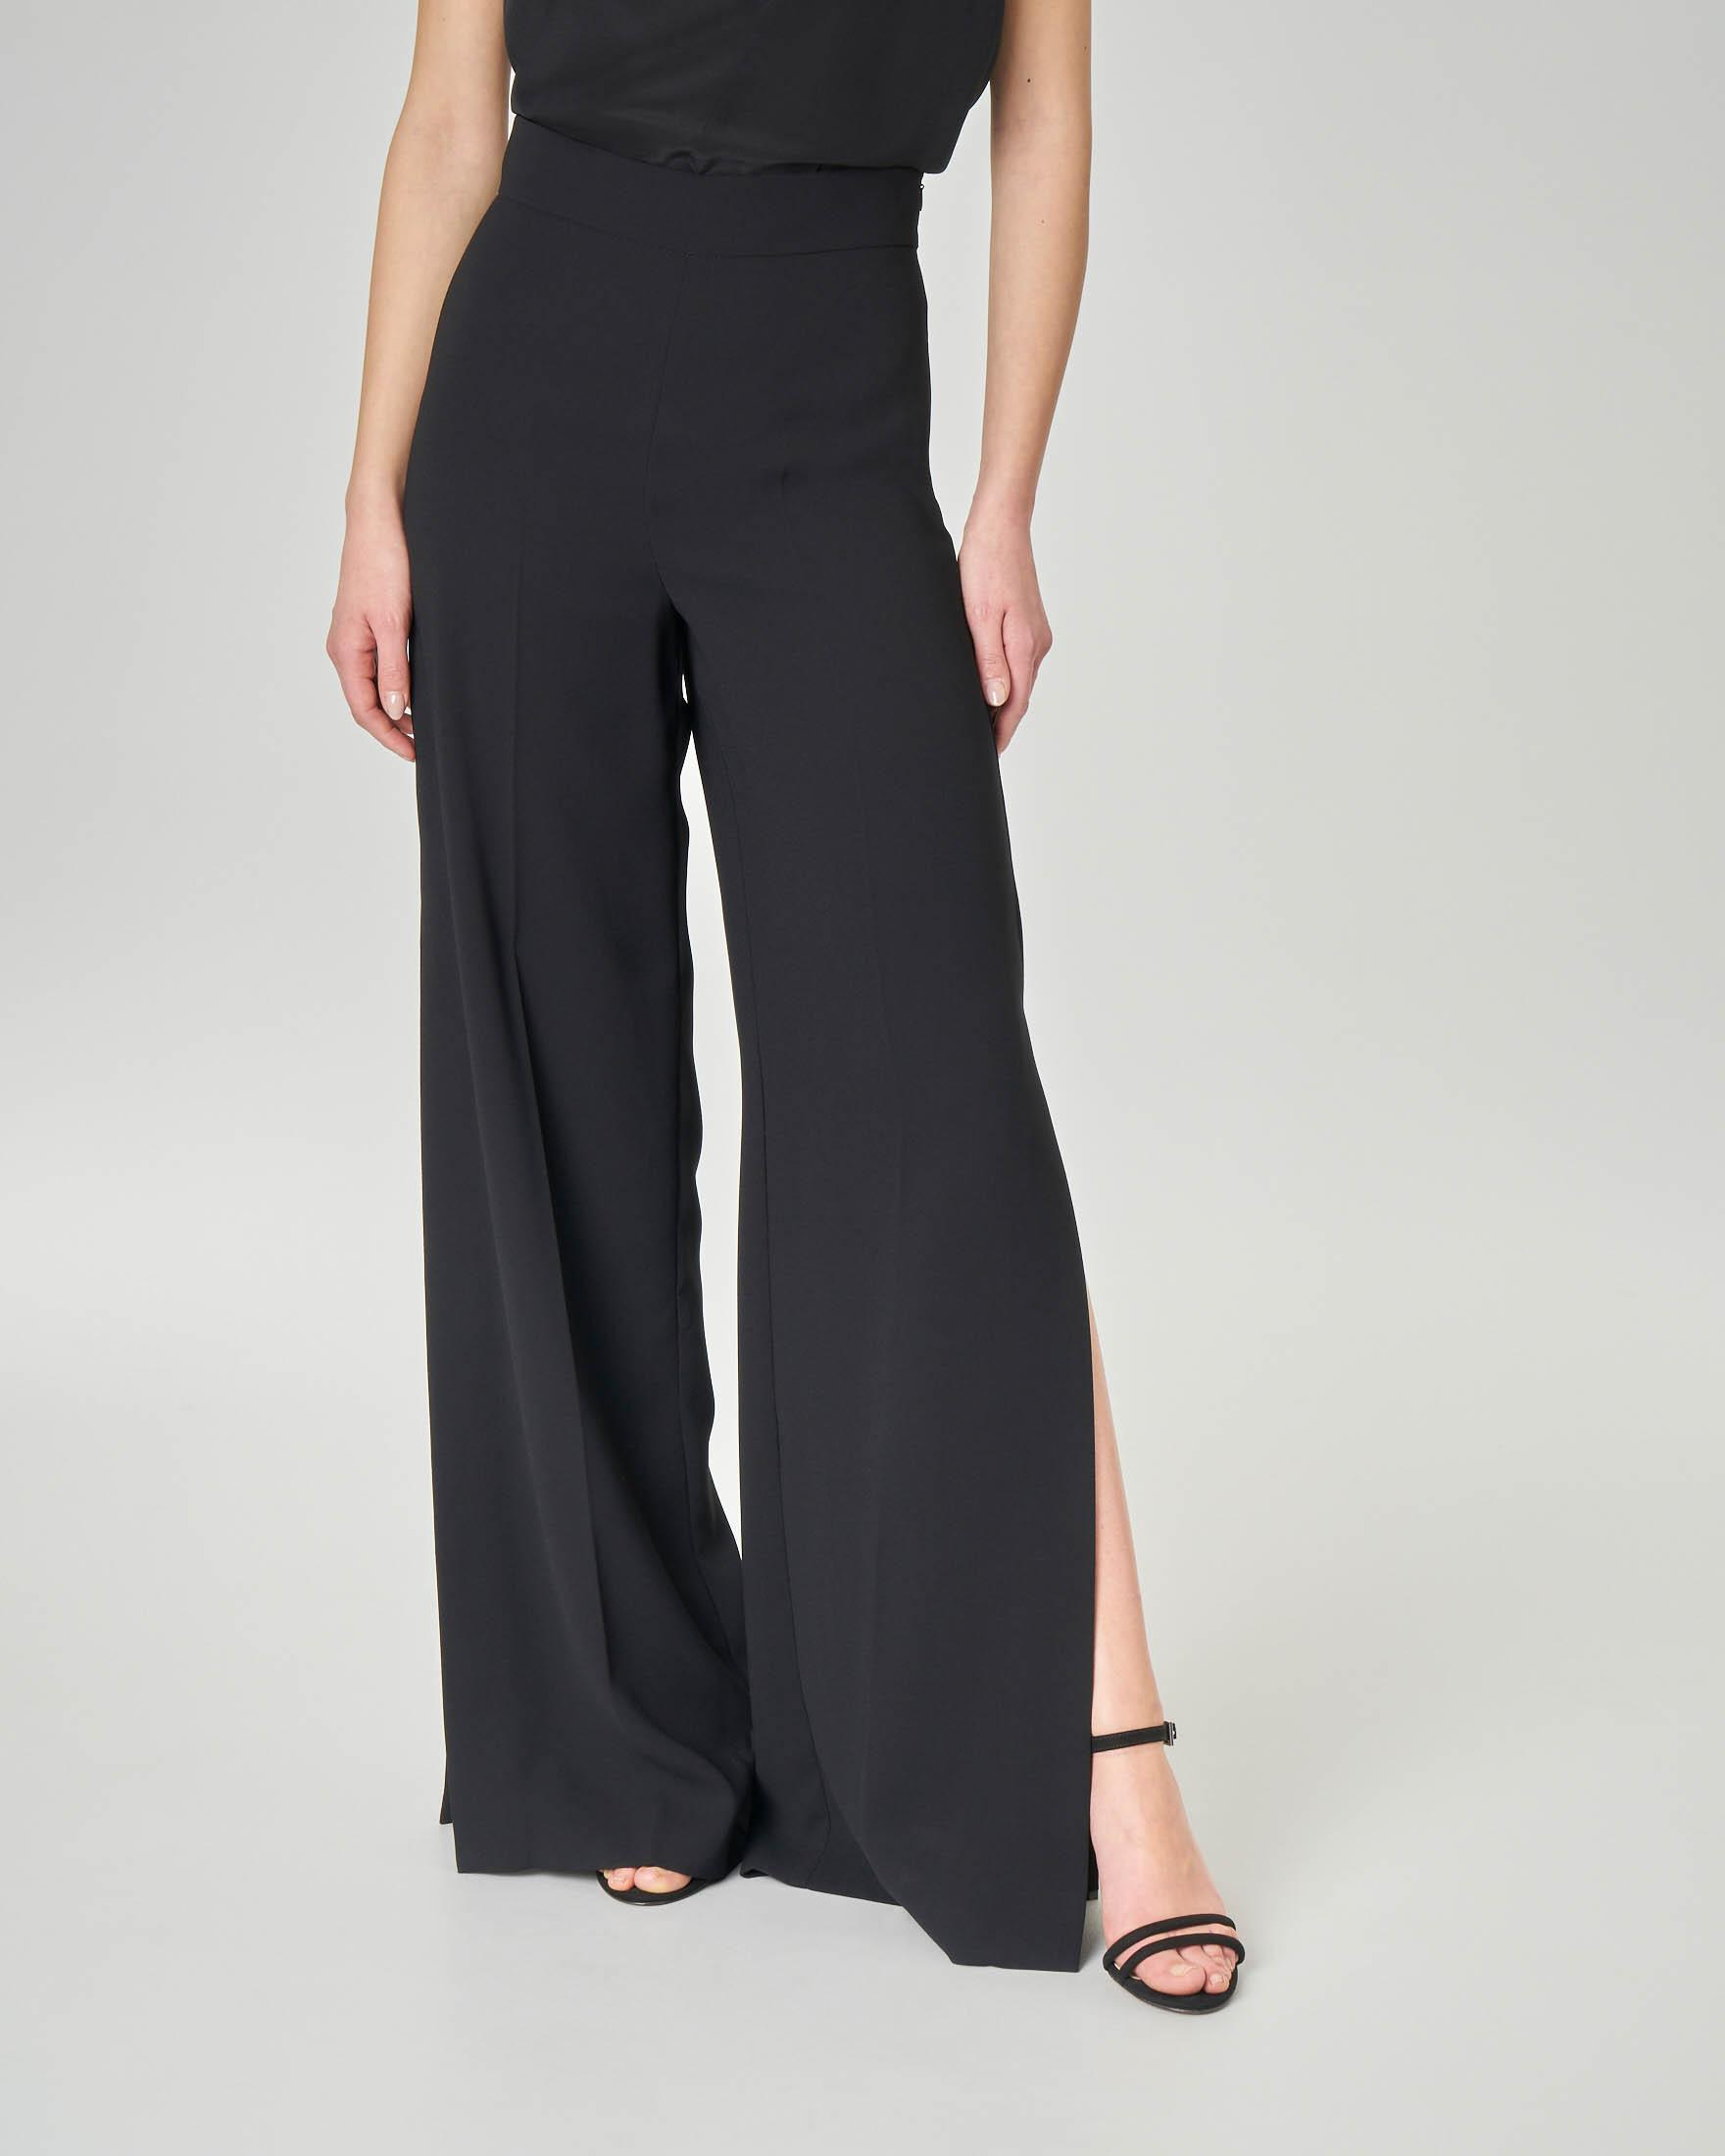 Pantaloni in cady neri con spacco laterale